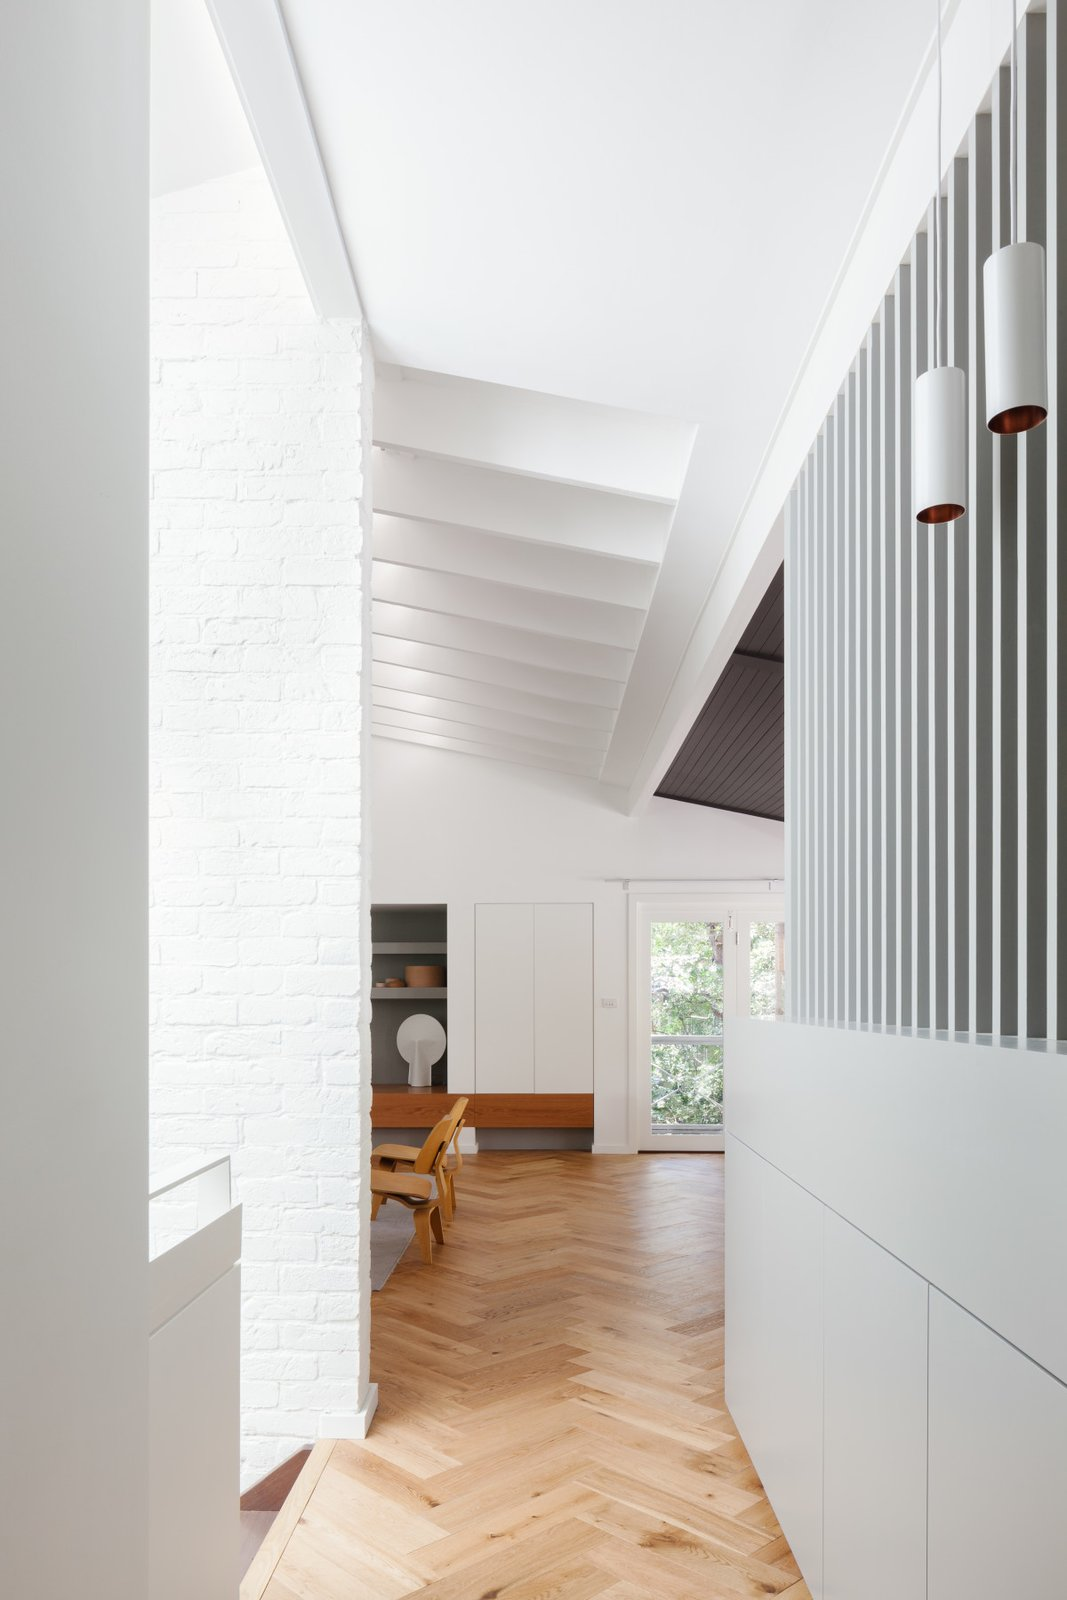 Photo 6 of 7 in Riverview by Nobbs Radford Architects